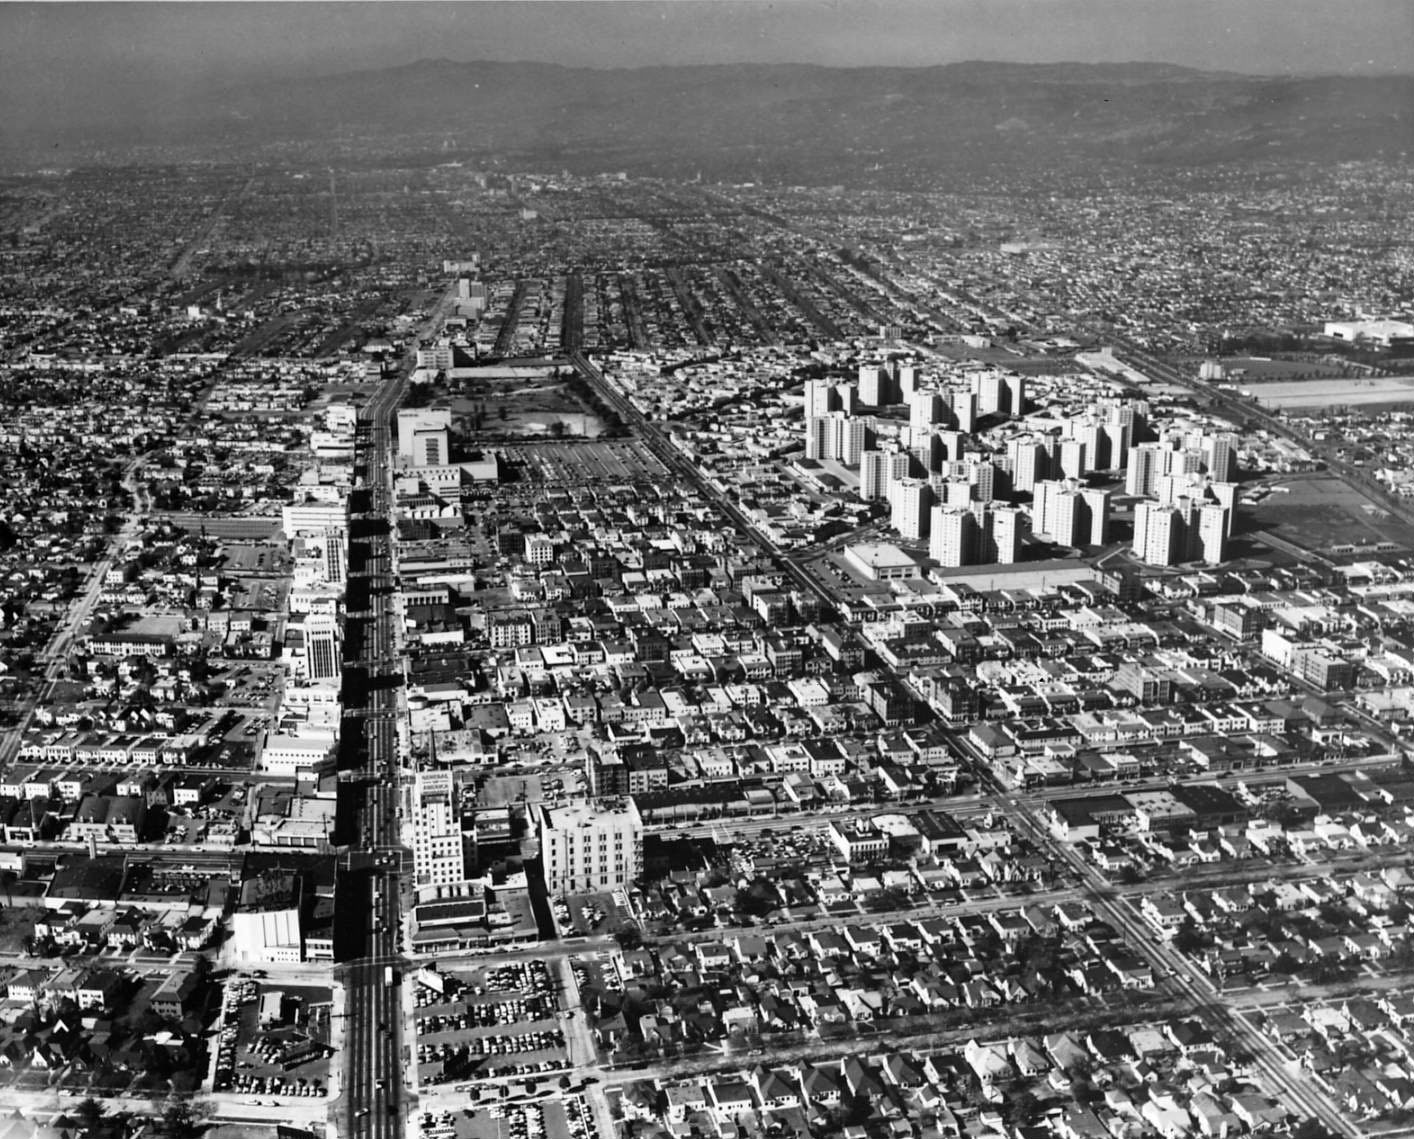 Aerial view of the Miracle Mile and Park La Brea, 1954.